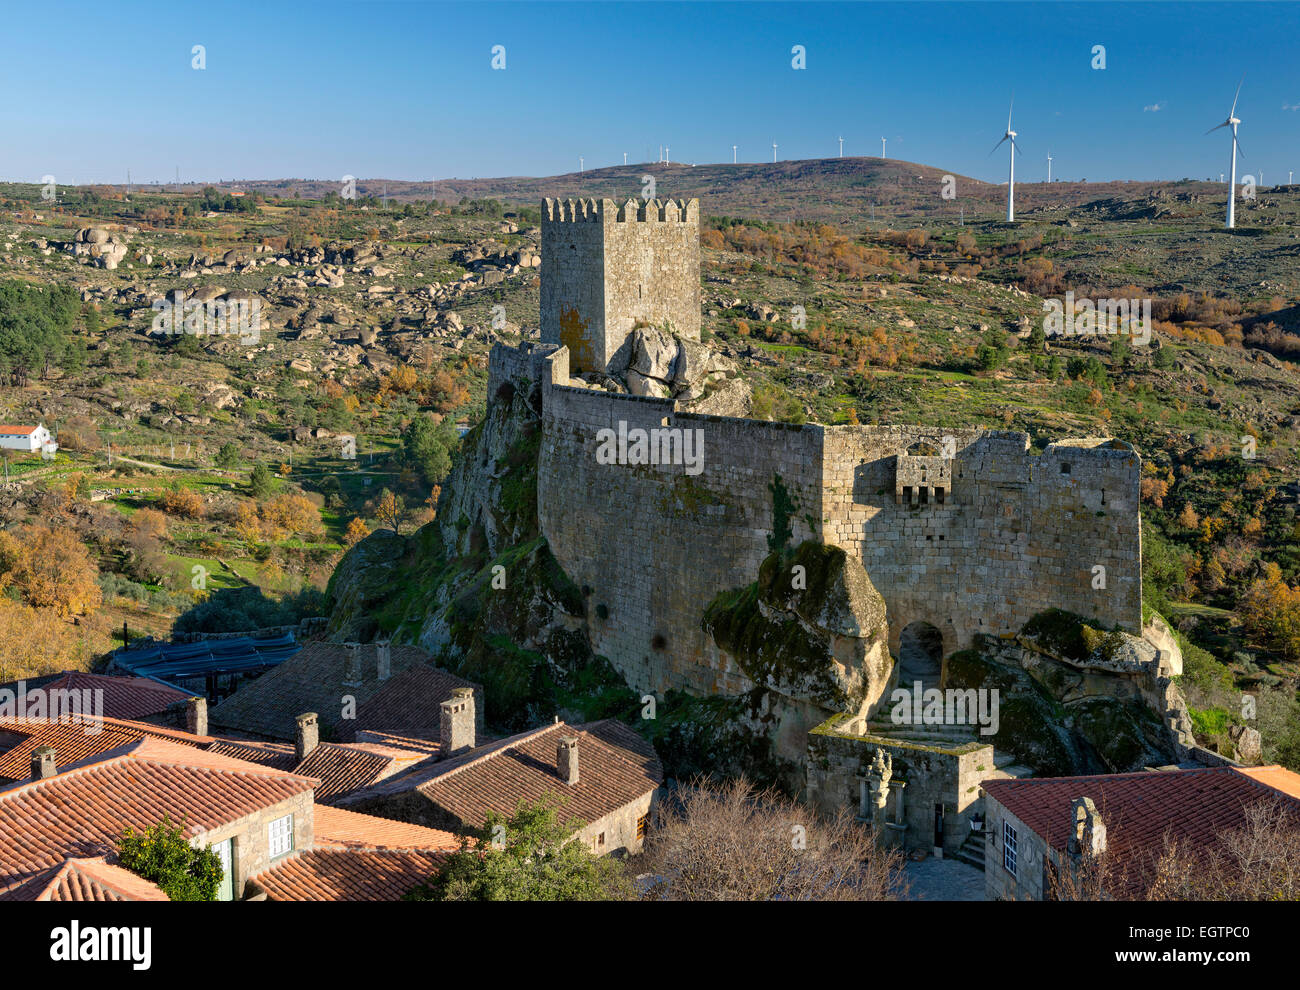 Portugal, Beira Alta, the medieval castle of Sortelha Stock Photo, Royalty Free Image 79220400